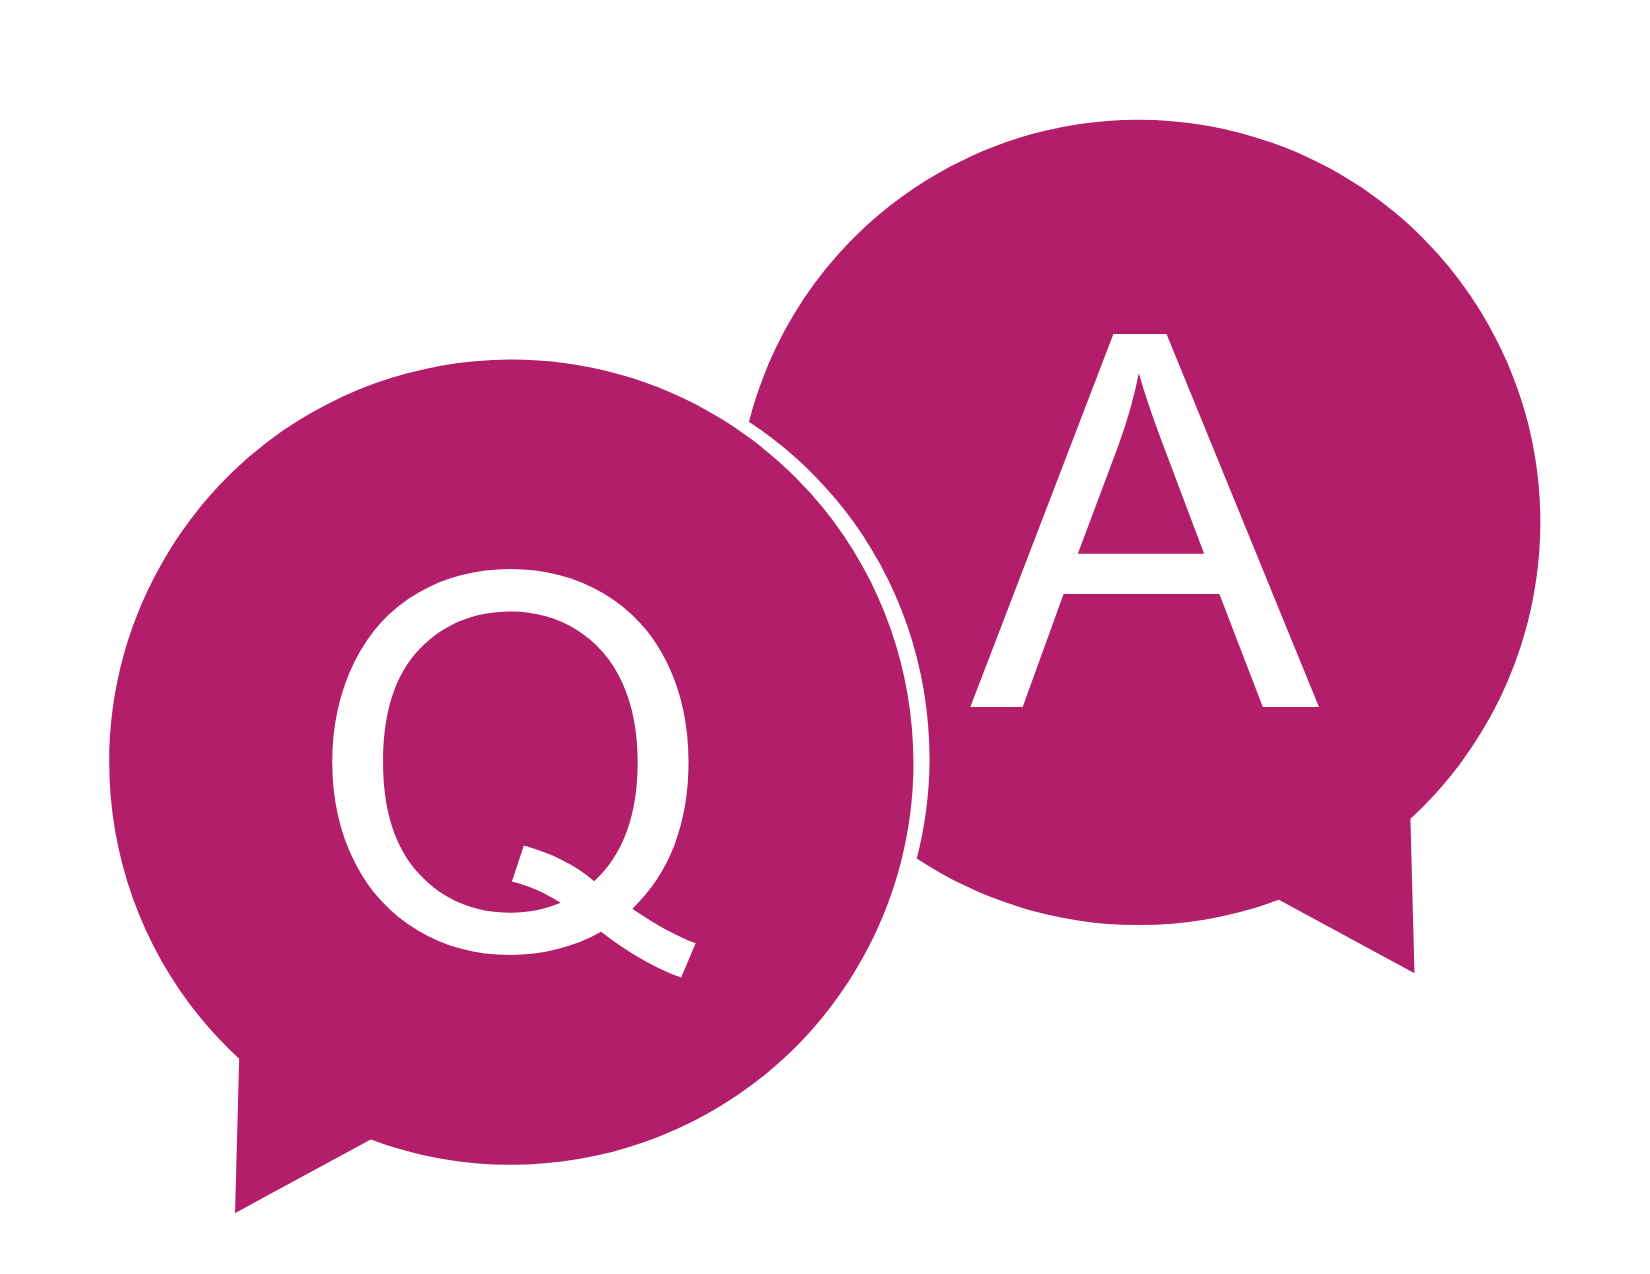 Weekly Q&A sessions with The Consignment Consultant & the FB Community